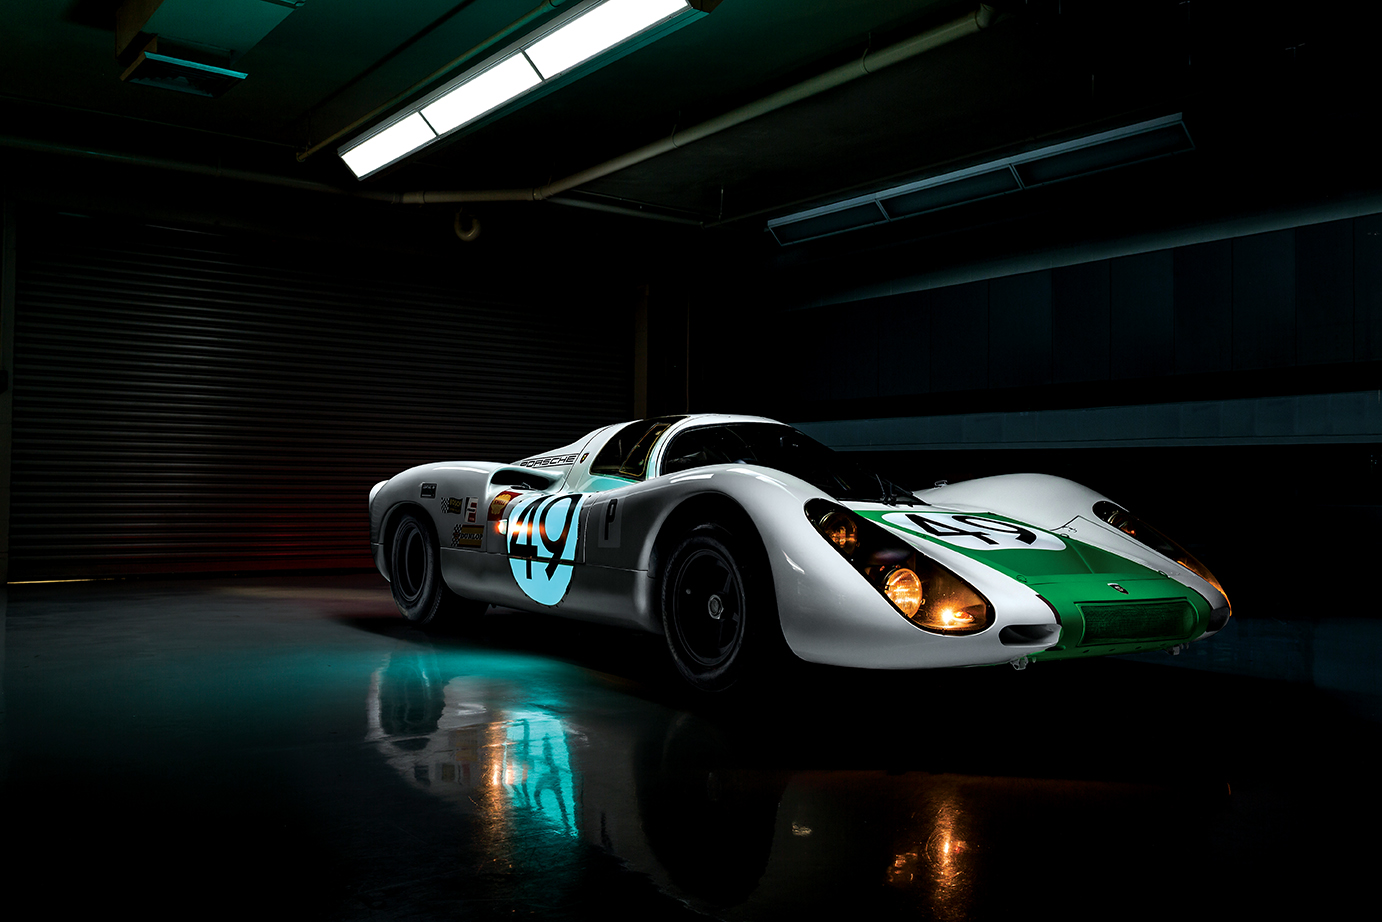 All lit up for nighttime racing: This 1968 Porsche 907 won its first race, the 12 Hours of Sebring. It retains the scars from that original triumph.